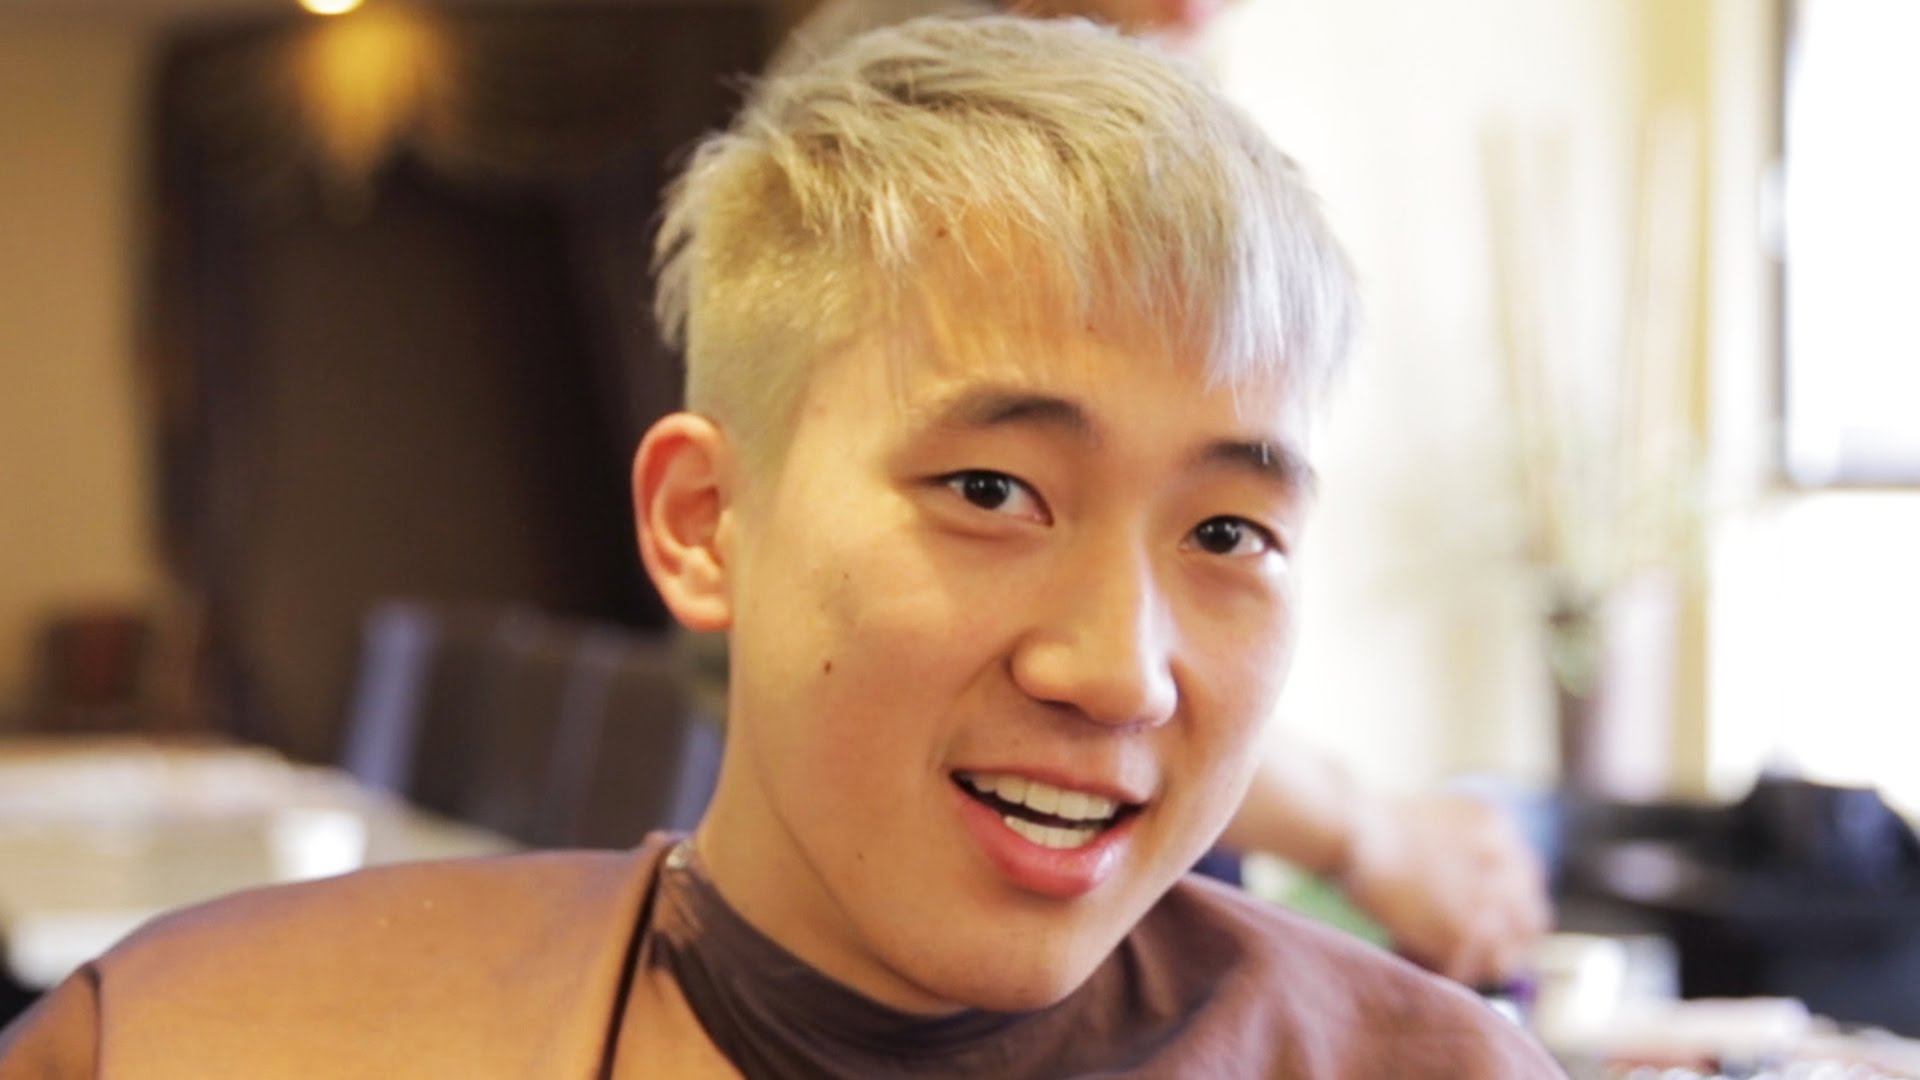 Asian guy with blonde